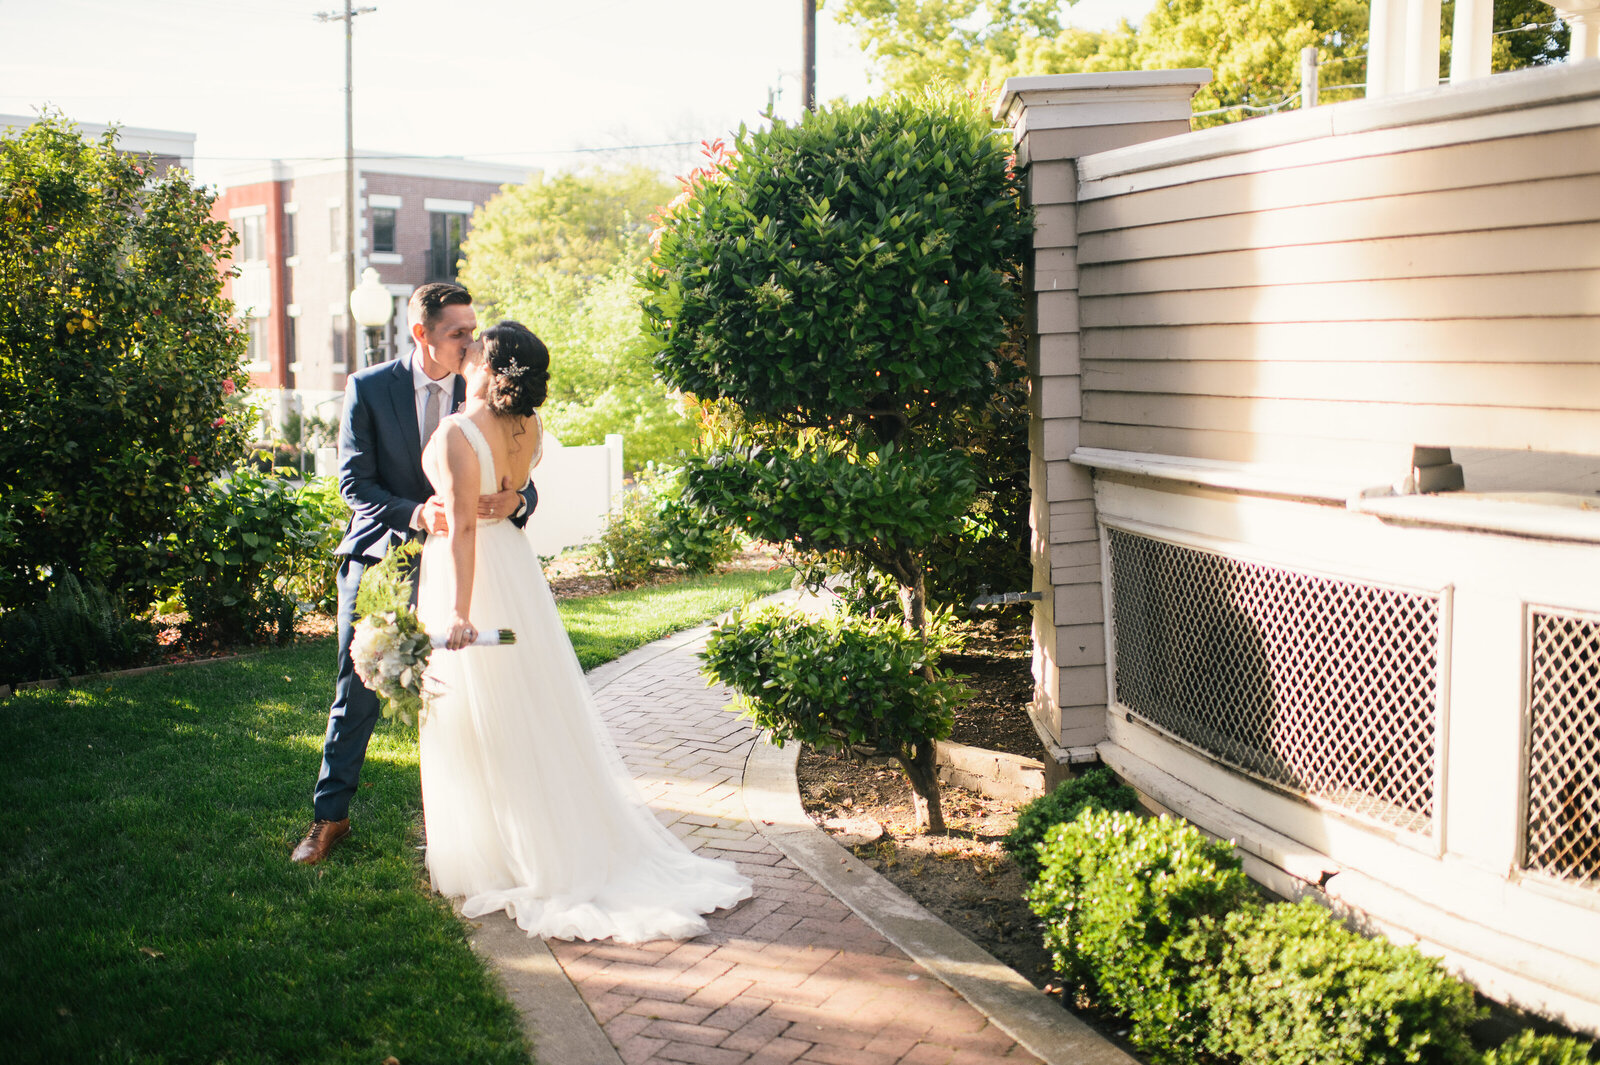 Newlyweds share a celebratory kiss near the Mansion after their ceremony as the golden hour light illuminates them.